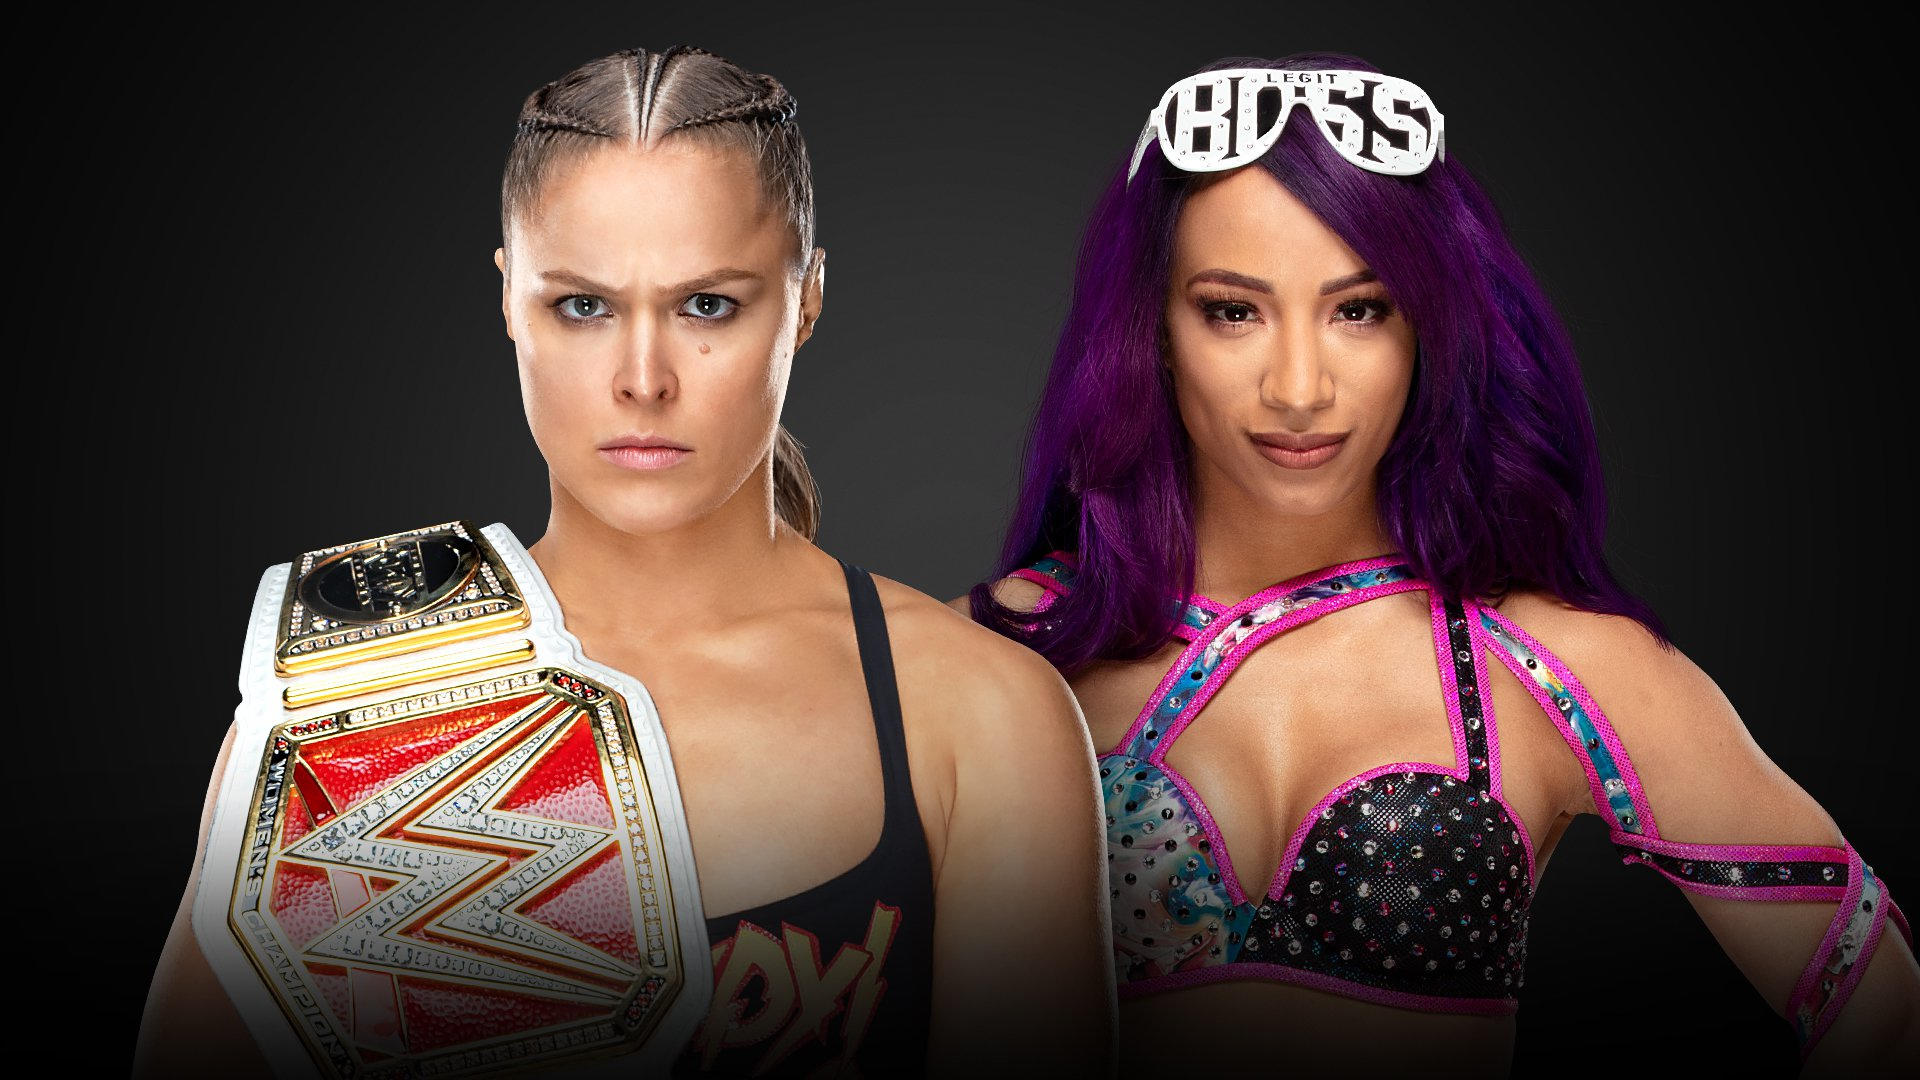 Confirmed and Potential Matches for WWE Royal Rumble 2019 20190107_RoyalRumble_temp_RondaSasha--785c8237b5a2401d1d4f12dc87c53dc7